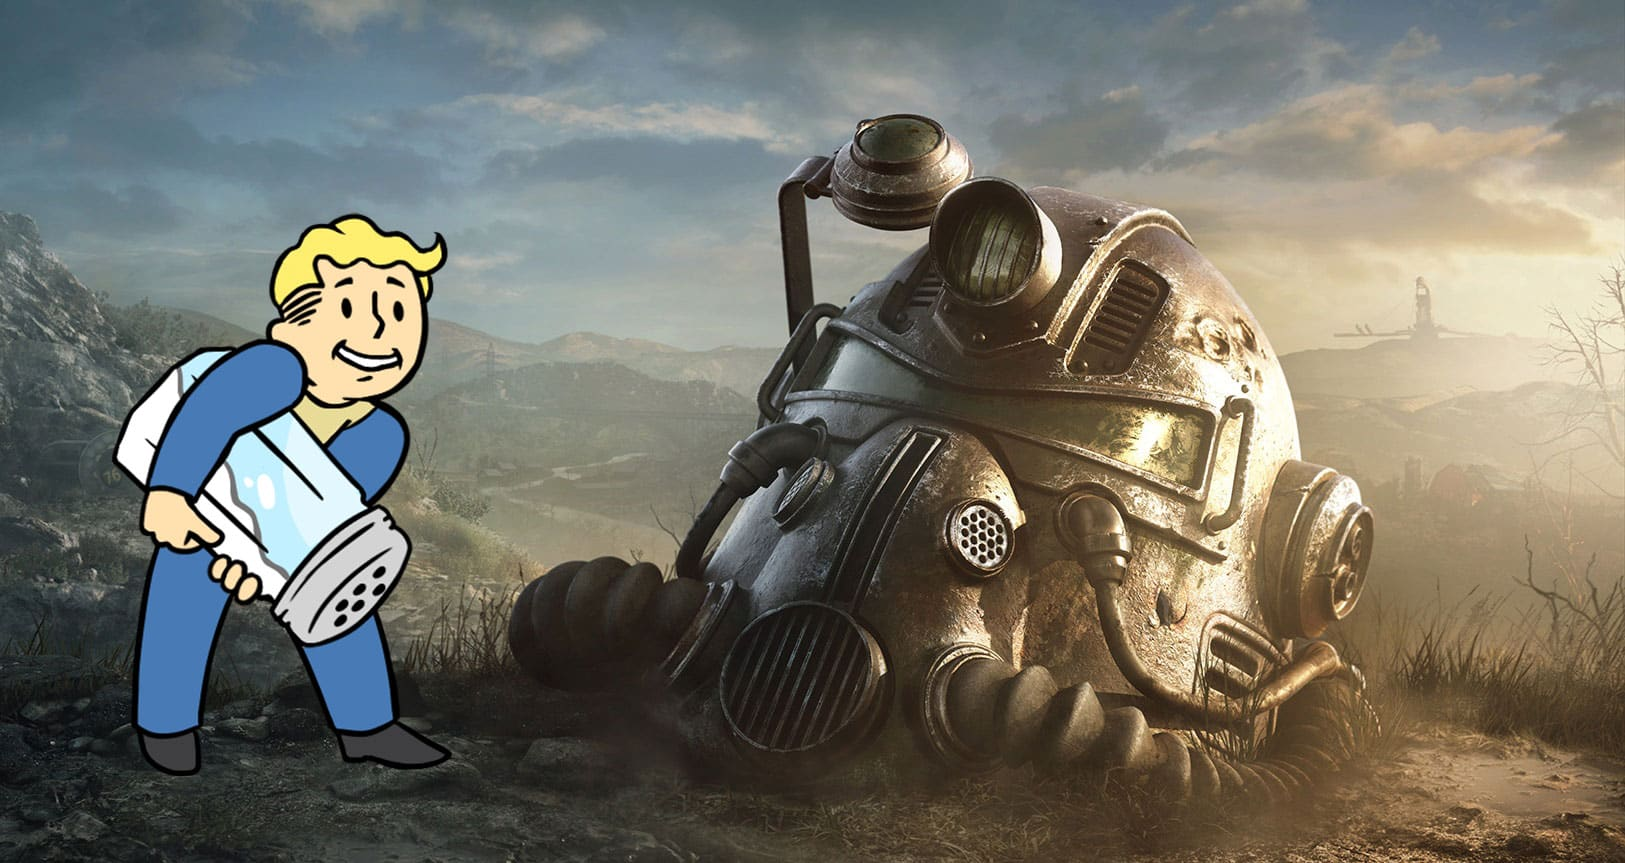 Latest Fallout 76 update